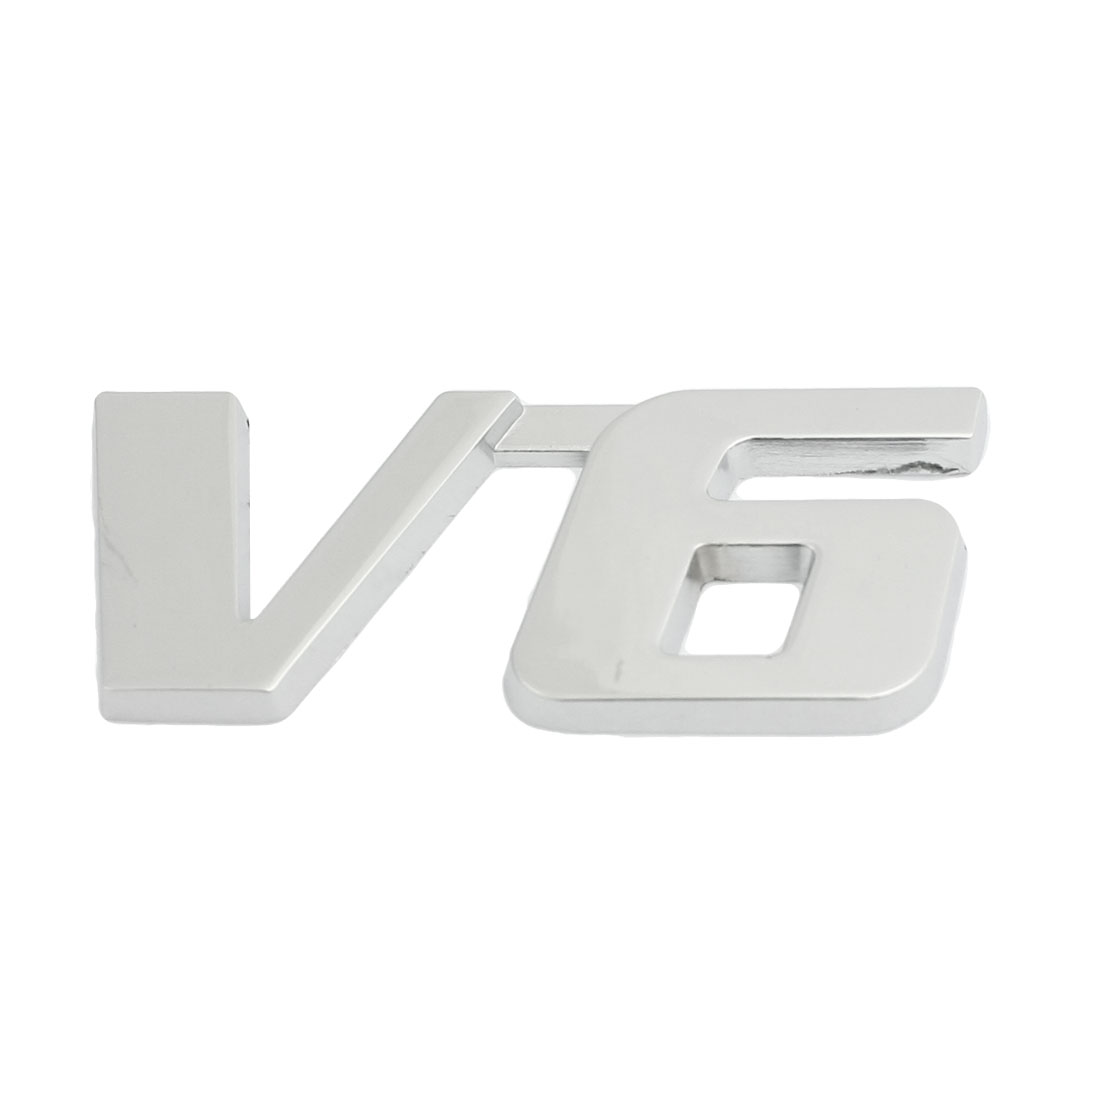 Silver Tone V6 Displacement 3D Adhesive Badge Sticker Decor for Vehicle Car